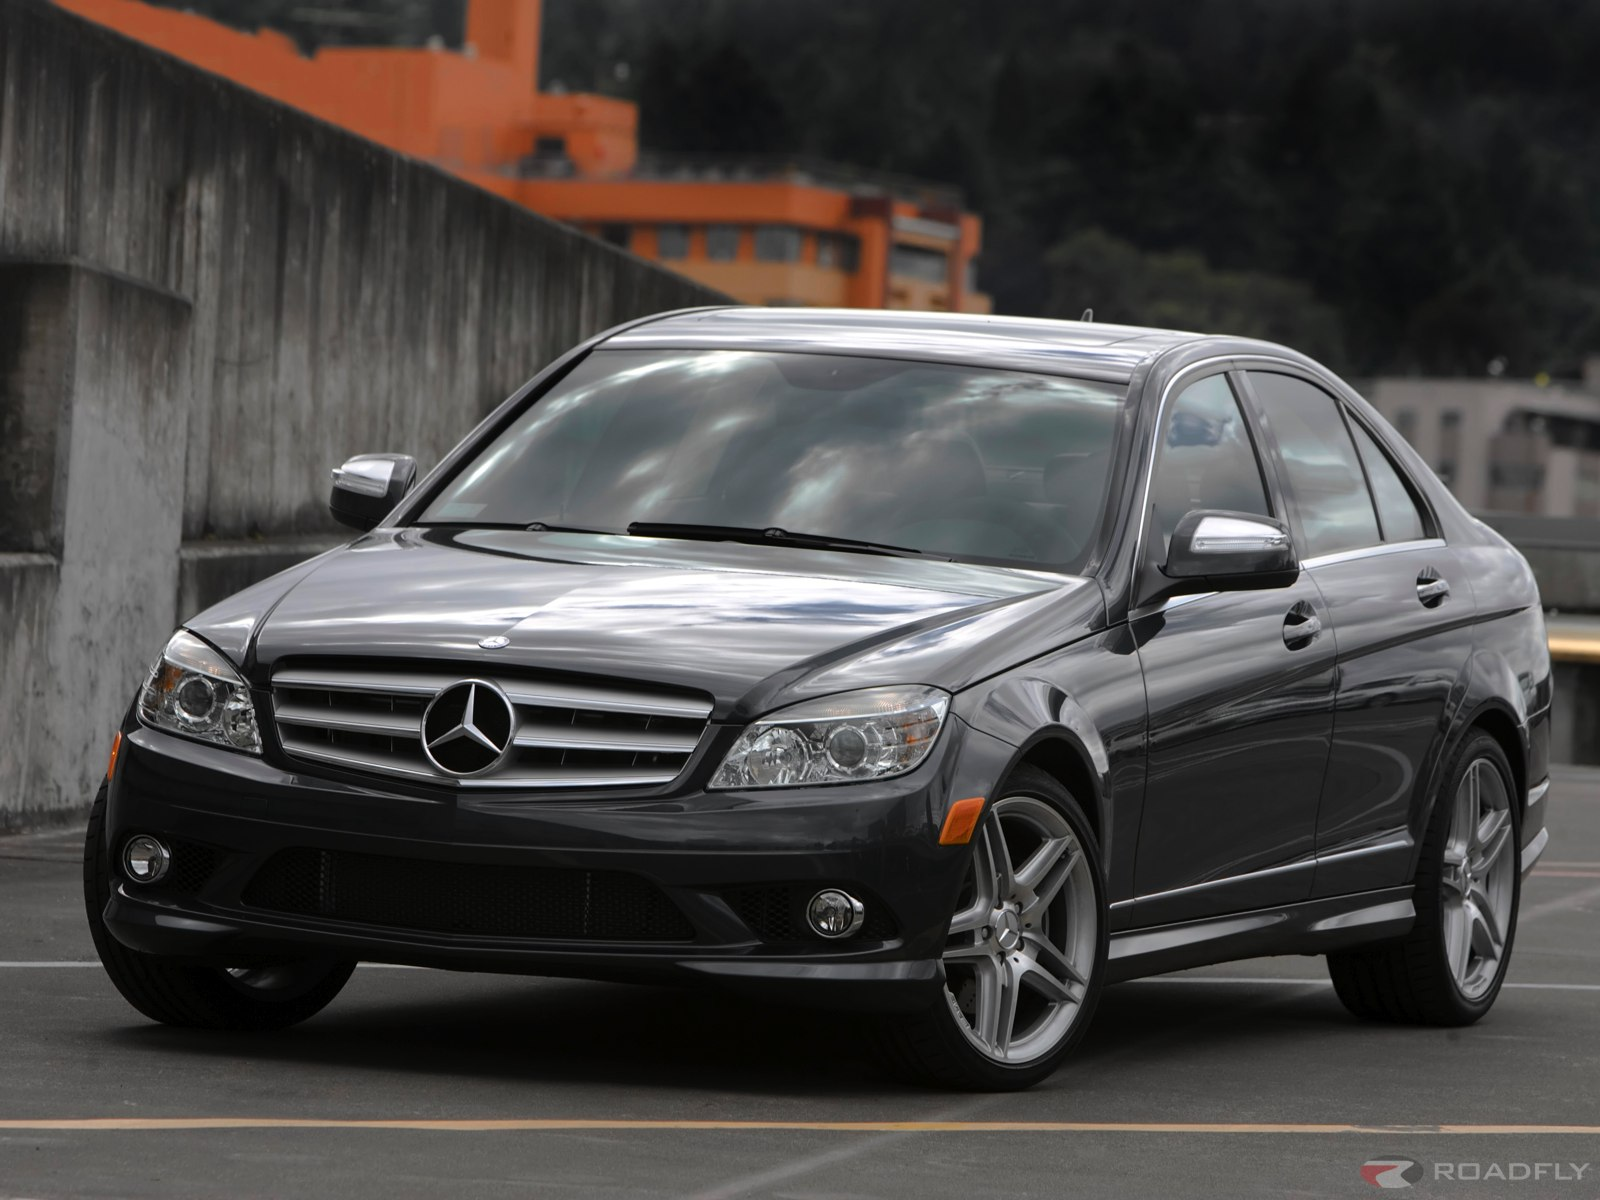 mercedes-benz c 350 4matic-pic. 3